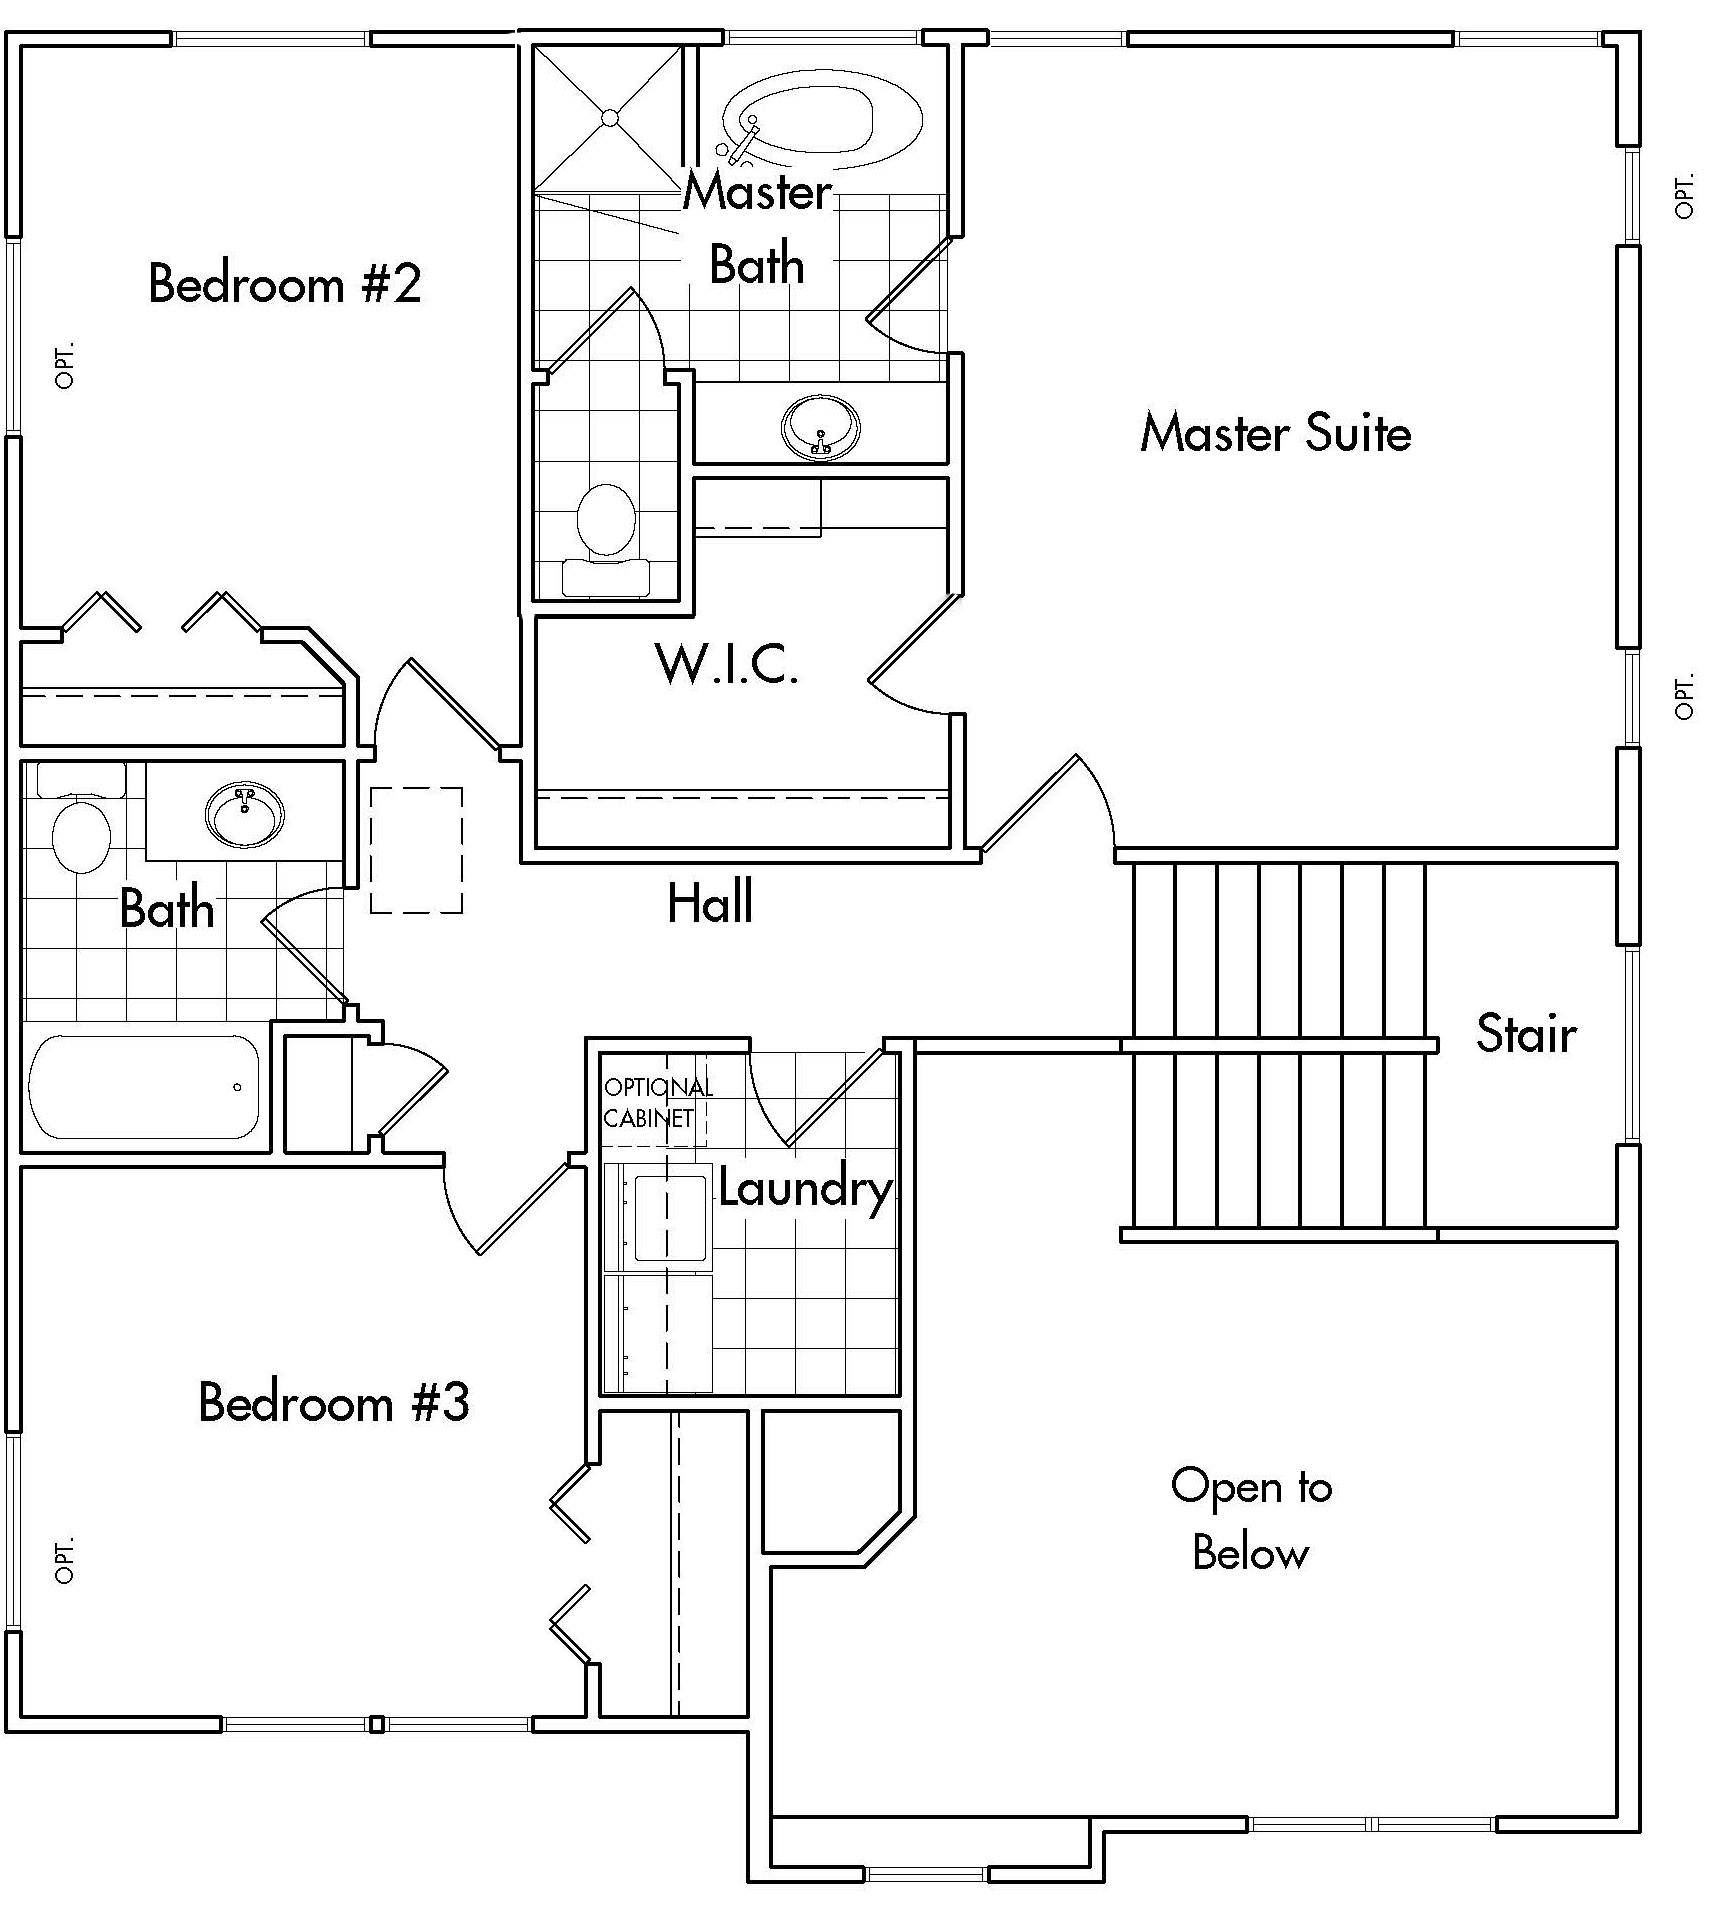 Home Design In Utah County: Covington Home Plan